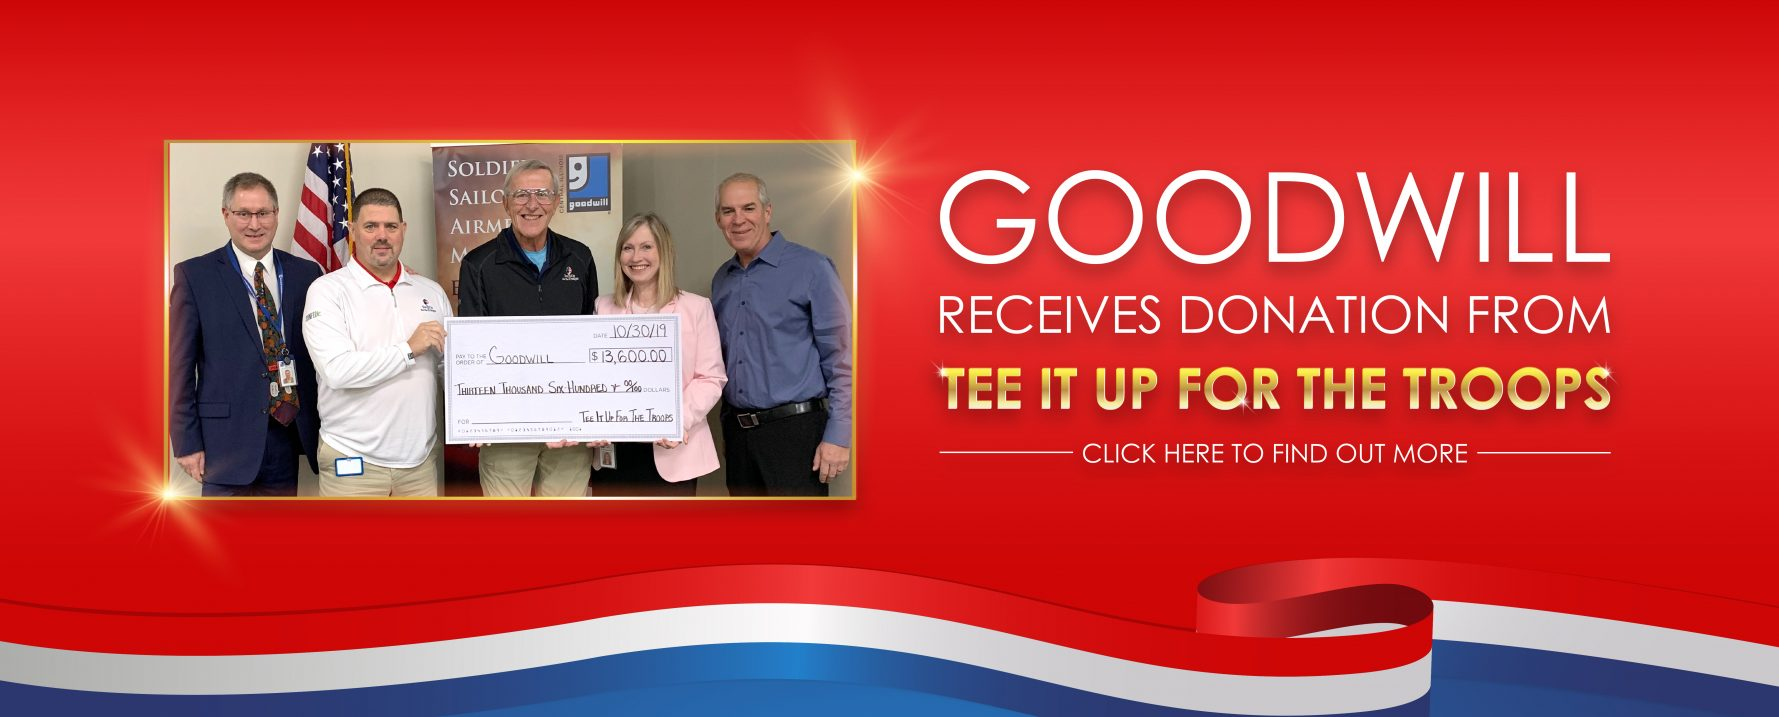 Goodwill Receives Donation from Tee It Up for the Troops